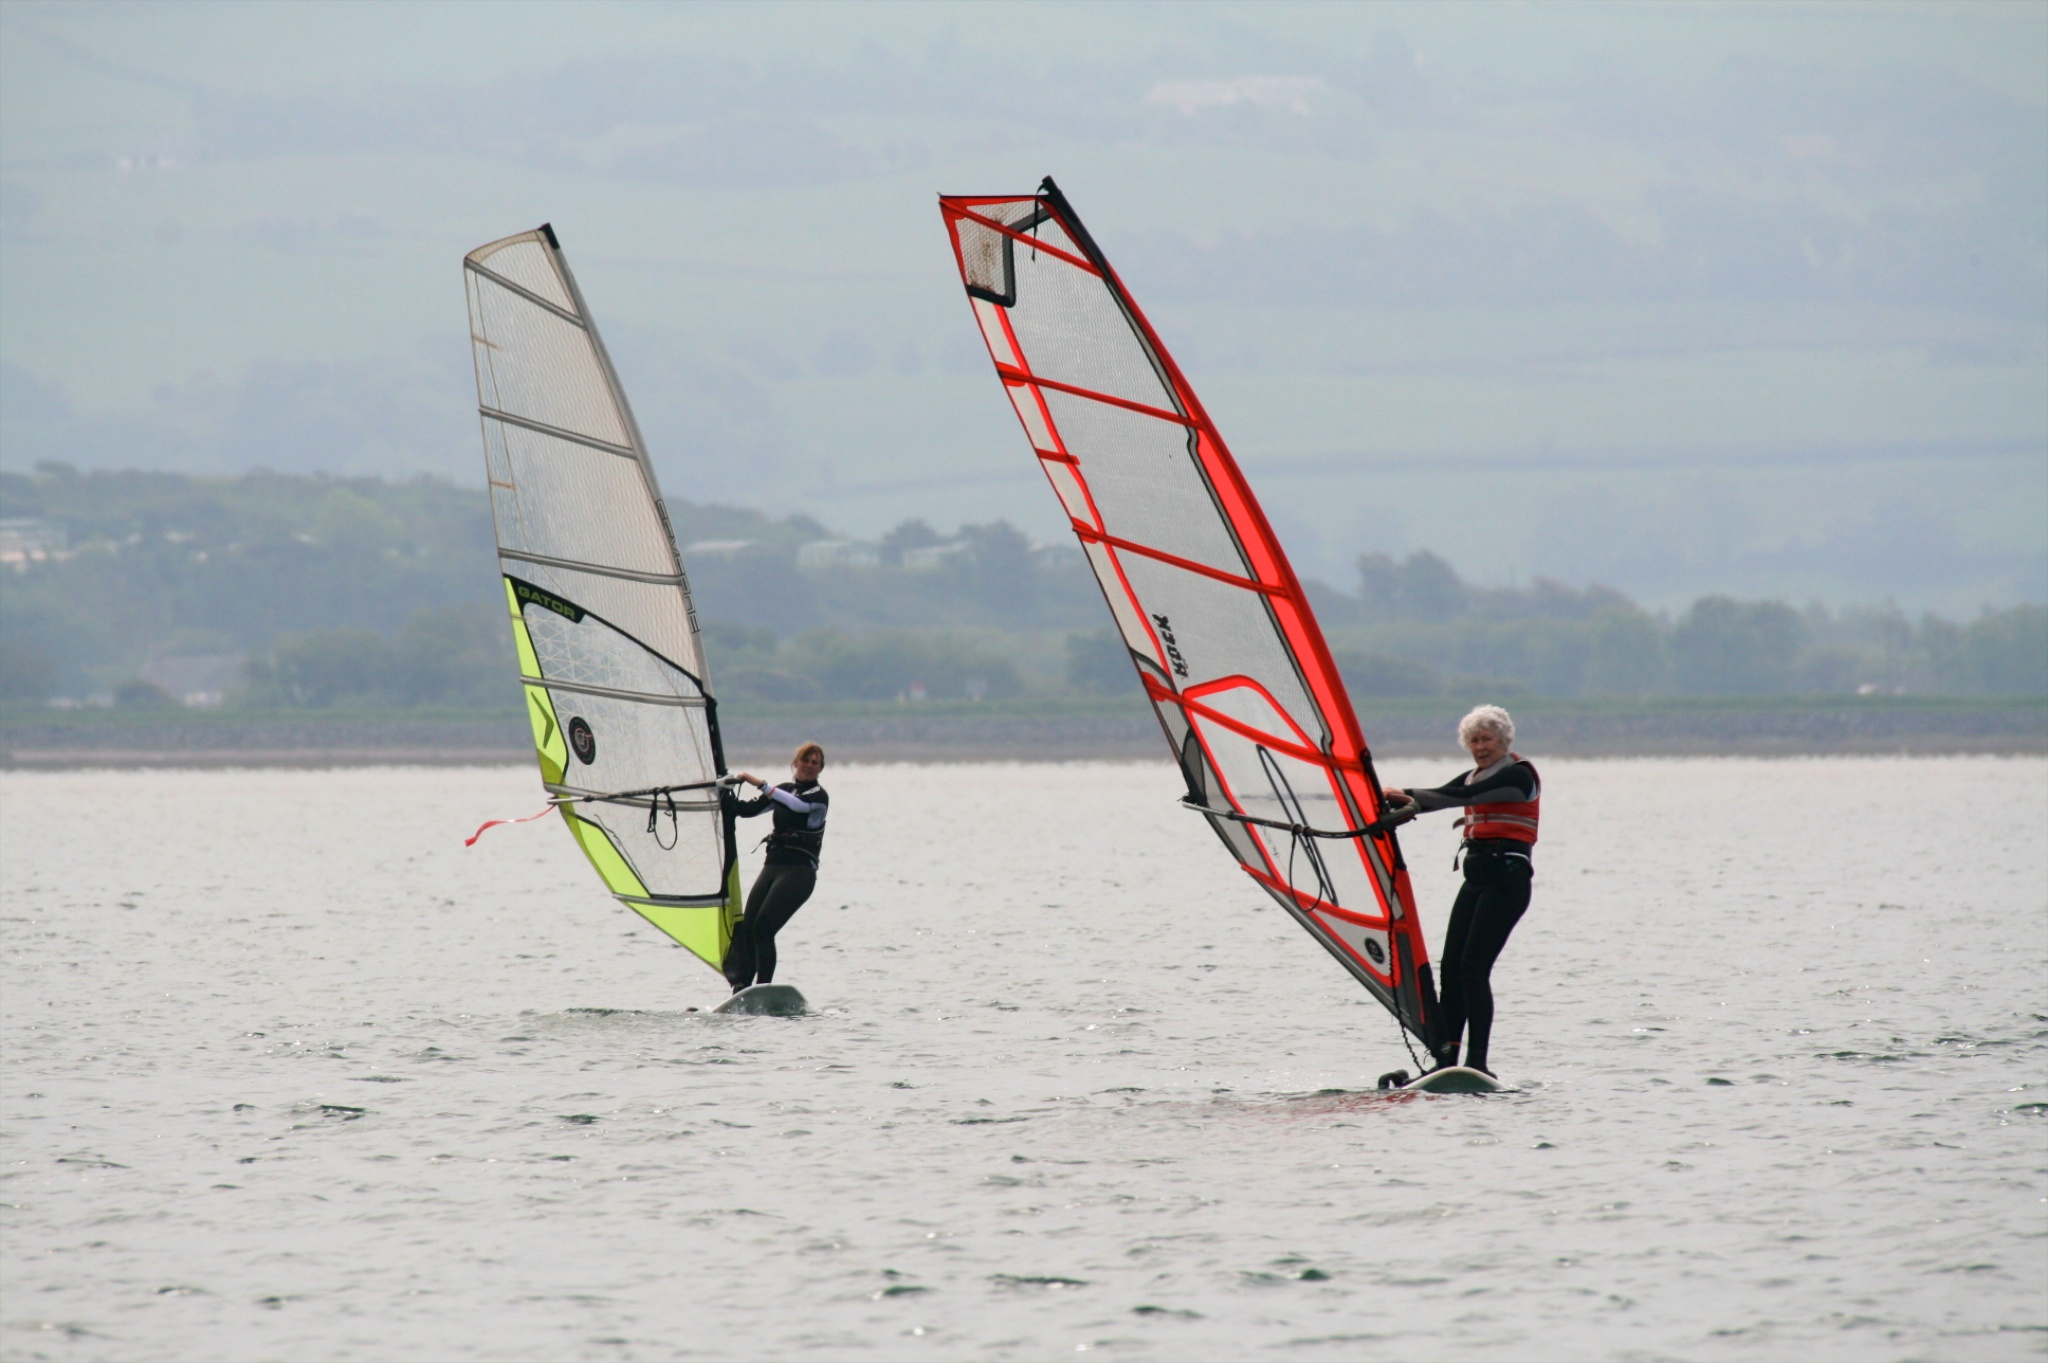 Lightwind racing for the master-blasters